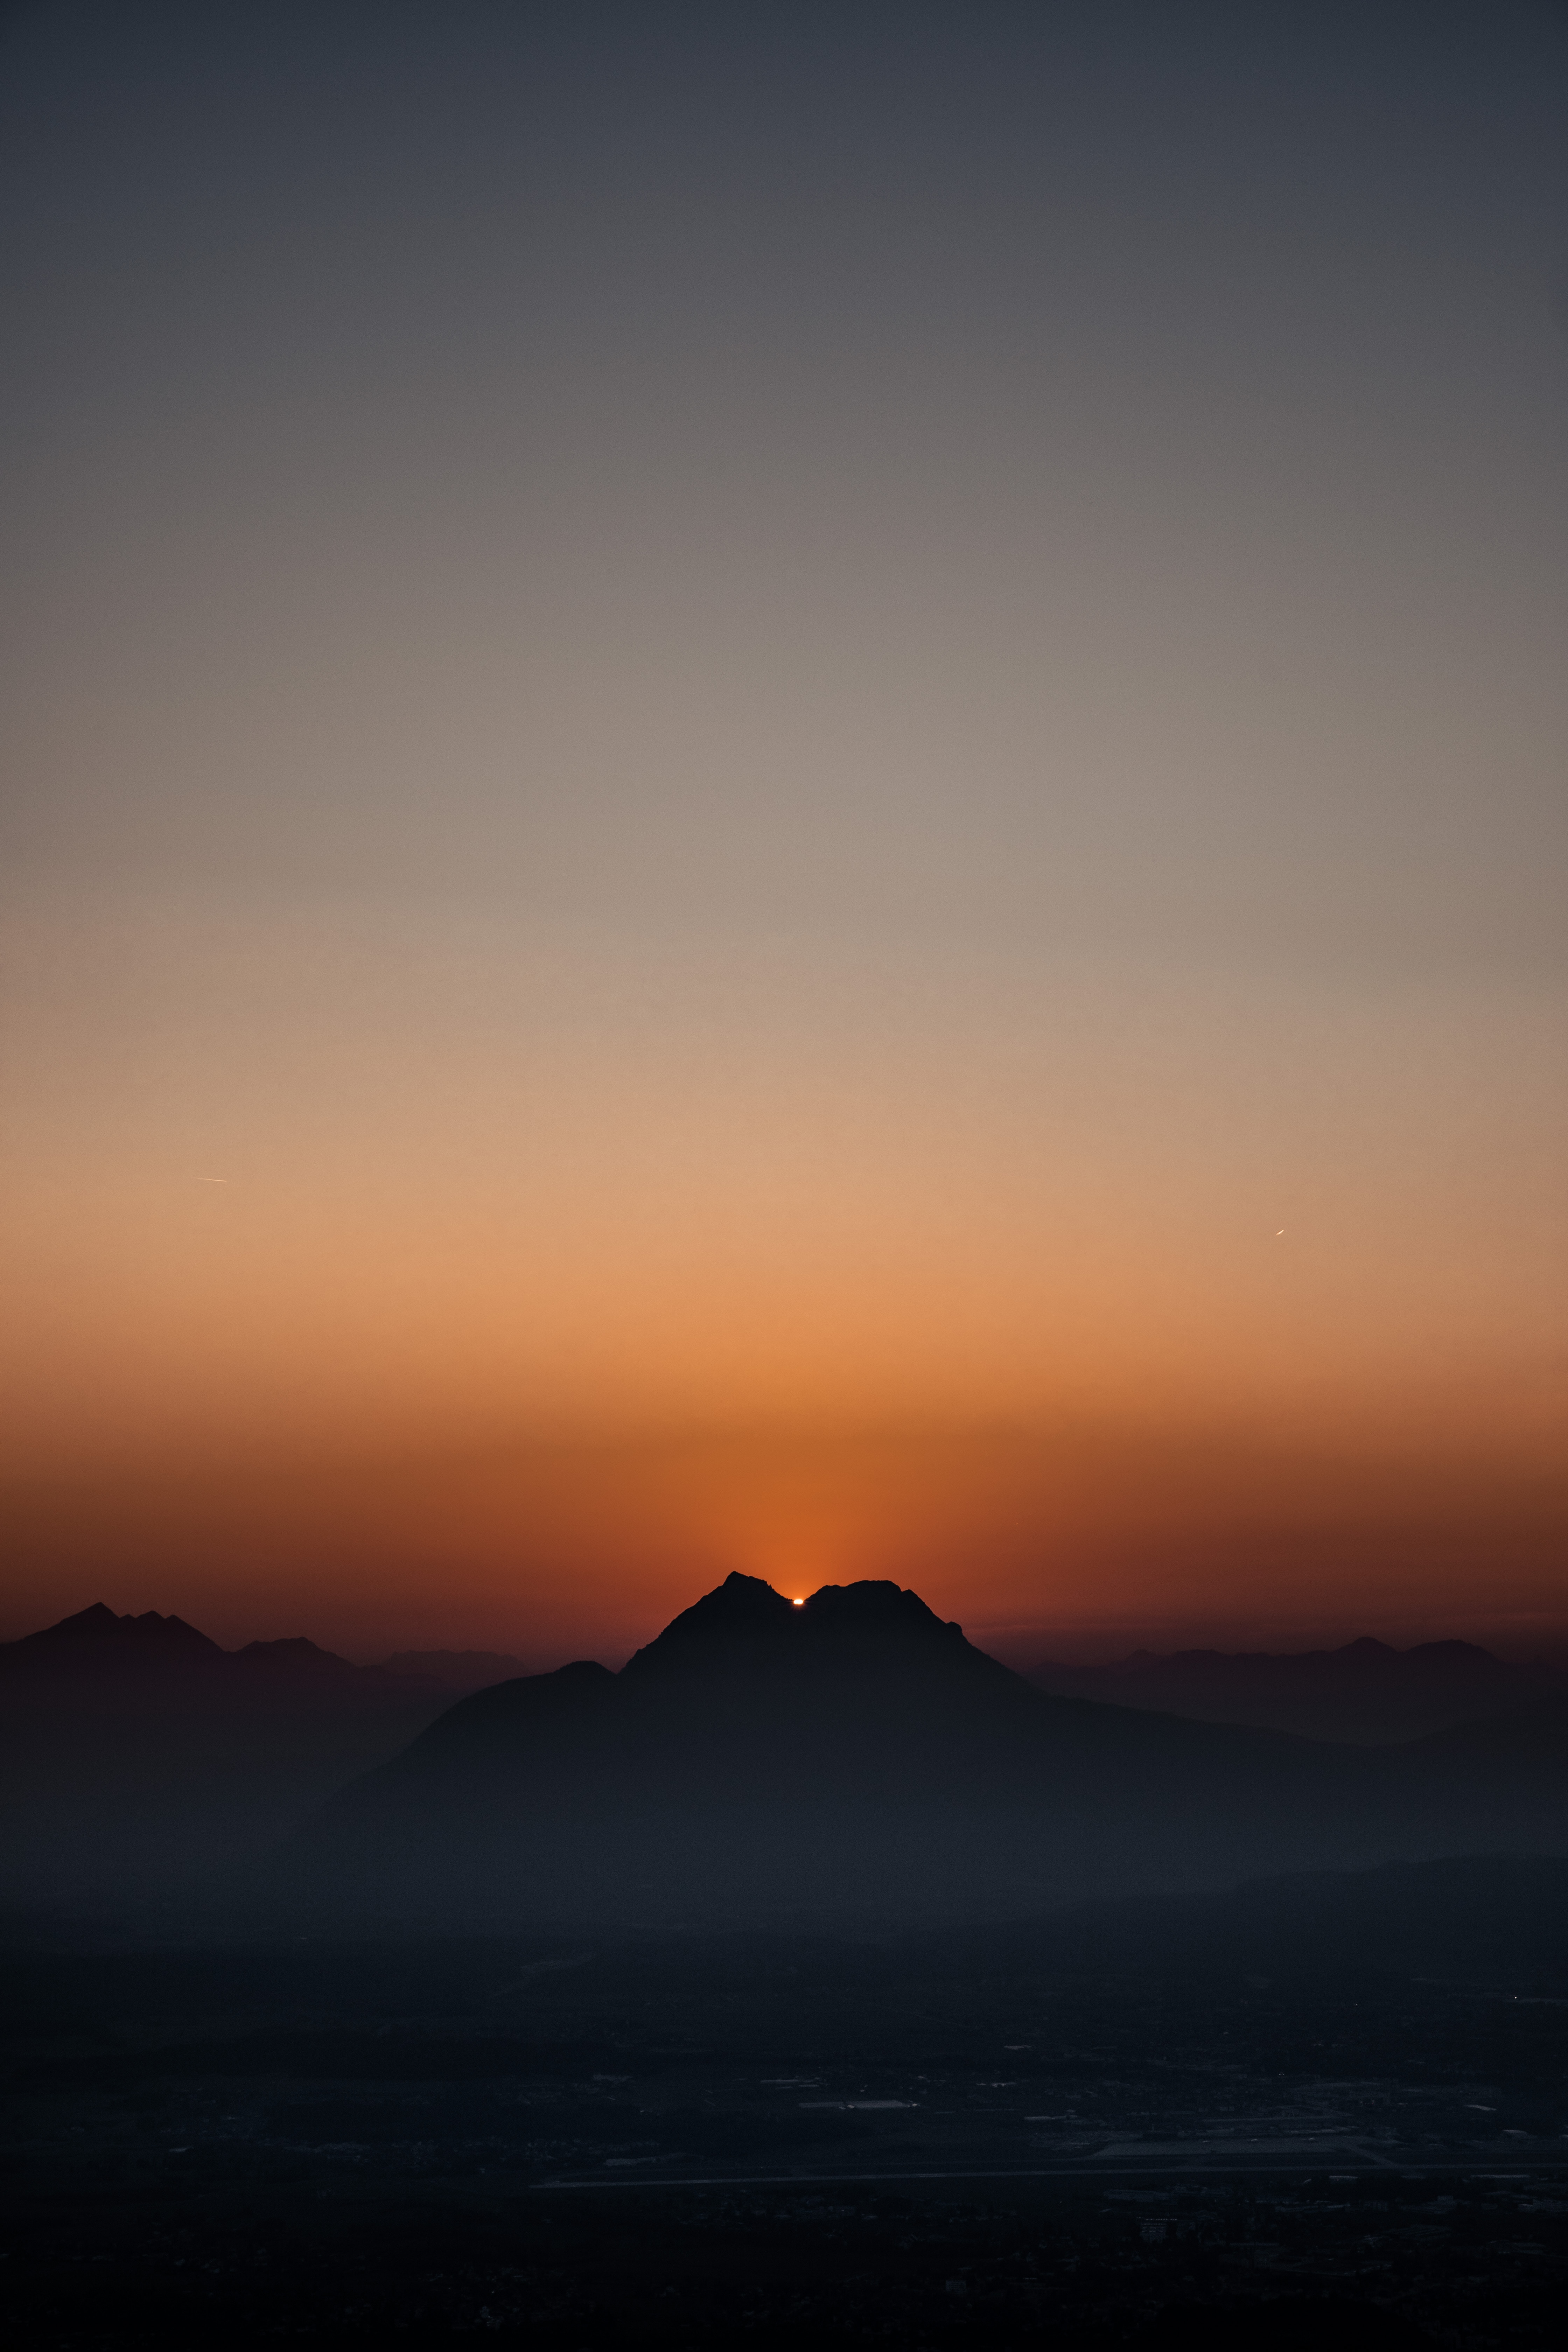 141629 download wallpaper Nature, Sunset, Fog, Dusk, Twilight, Dark, Mountains screensavers and pictures for free